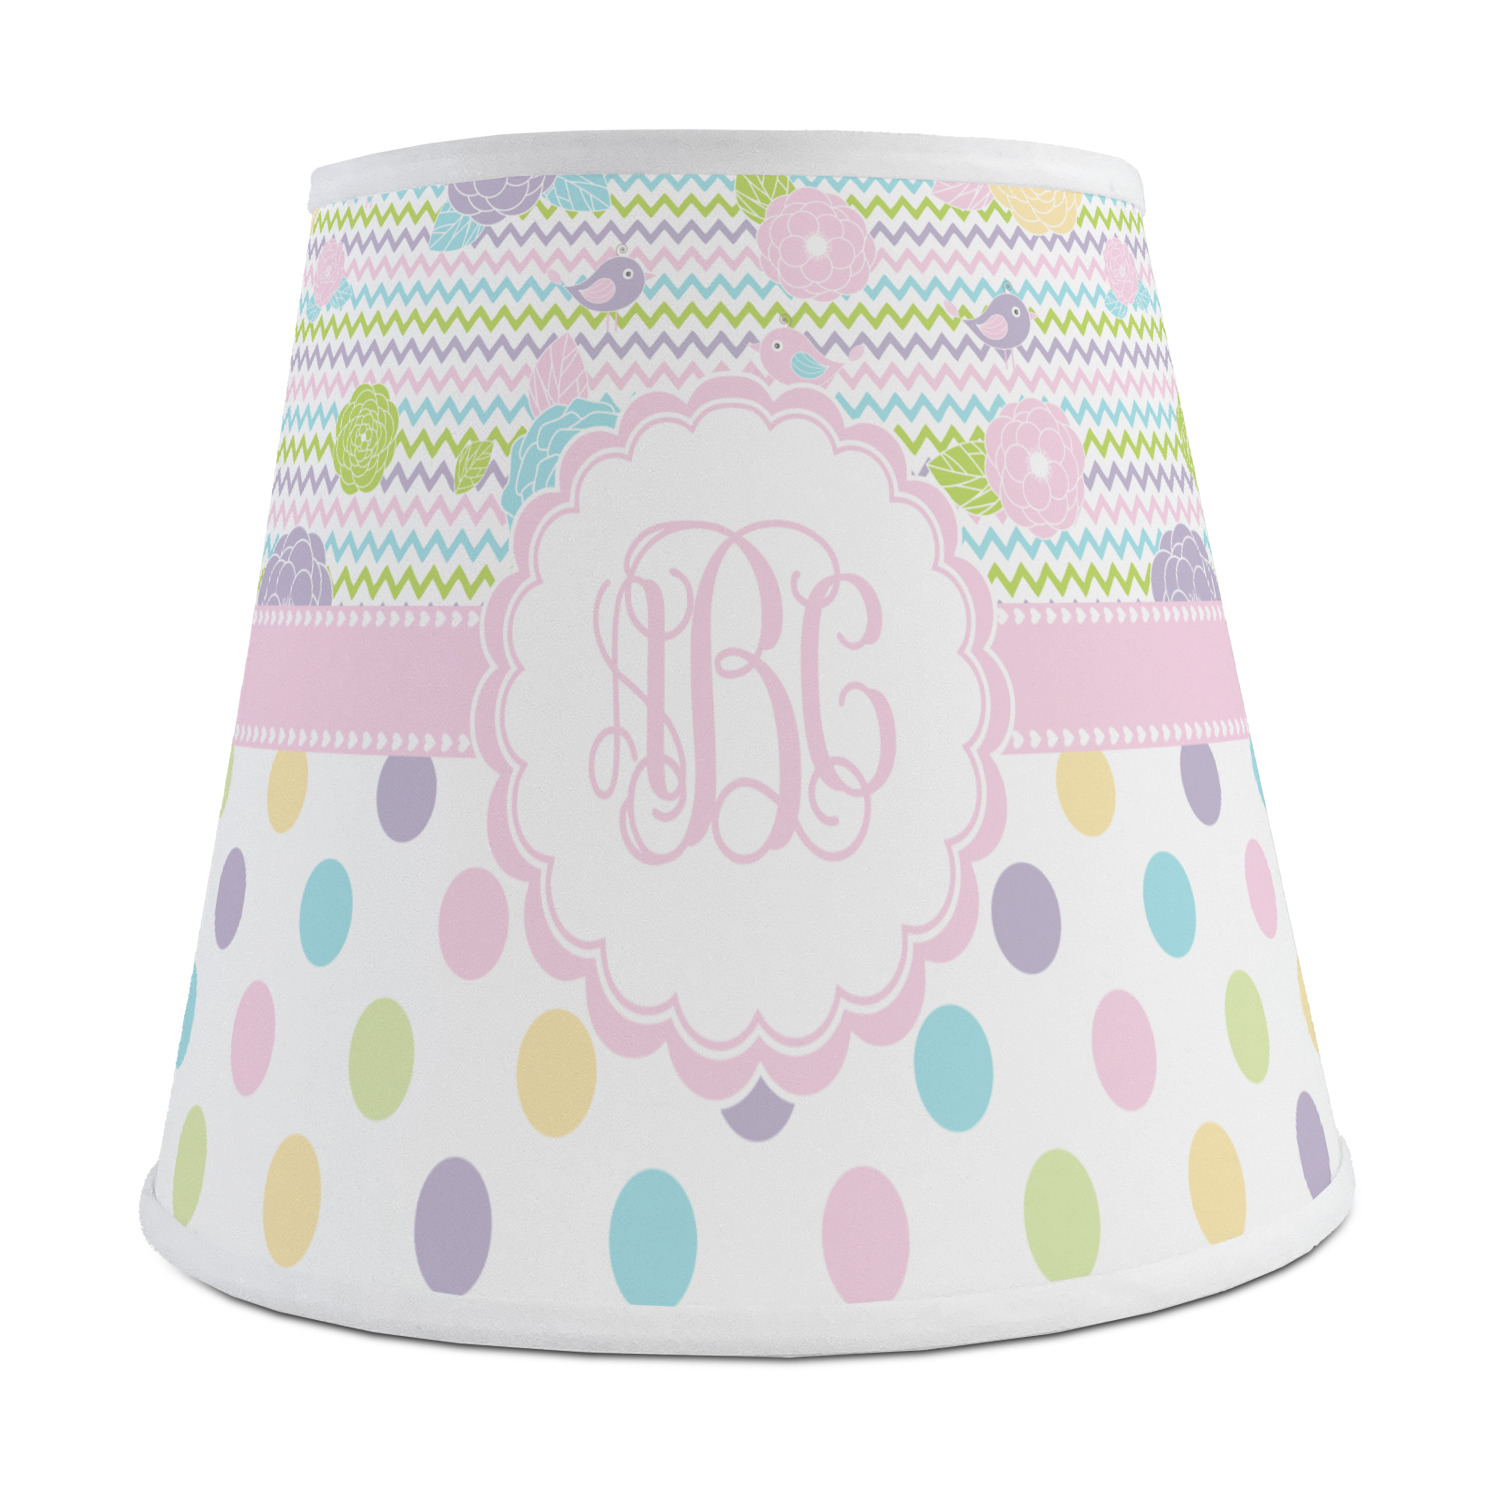 Girly Lamps For Bedroom: Girly Girl Empire Lamp Shade (Personalized)